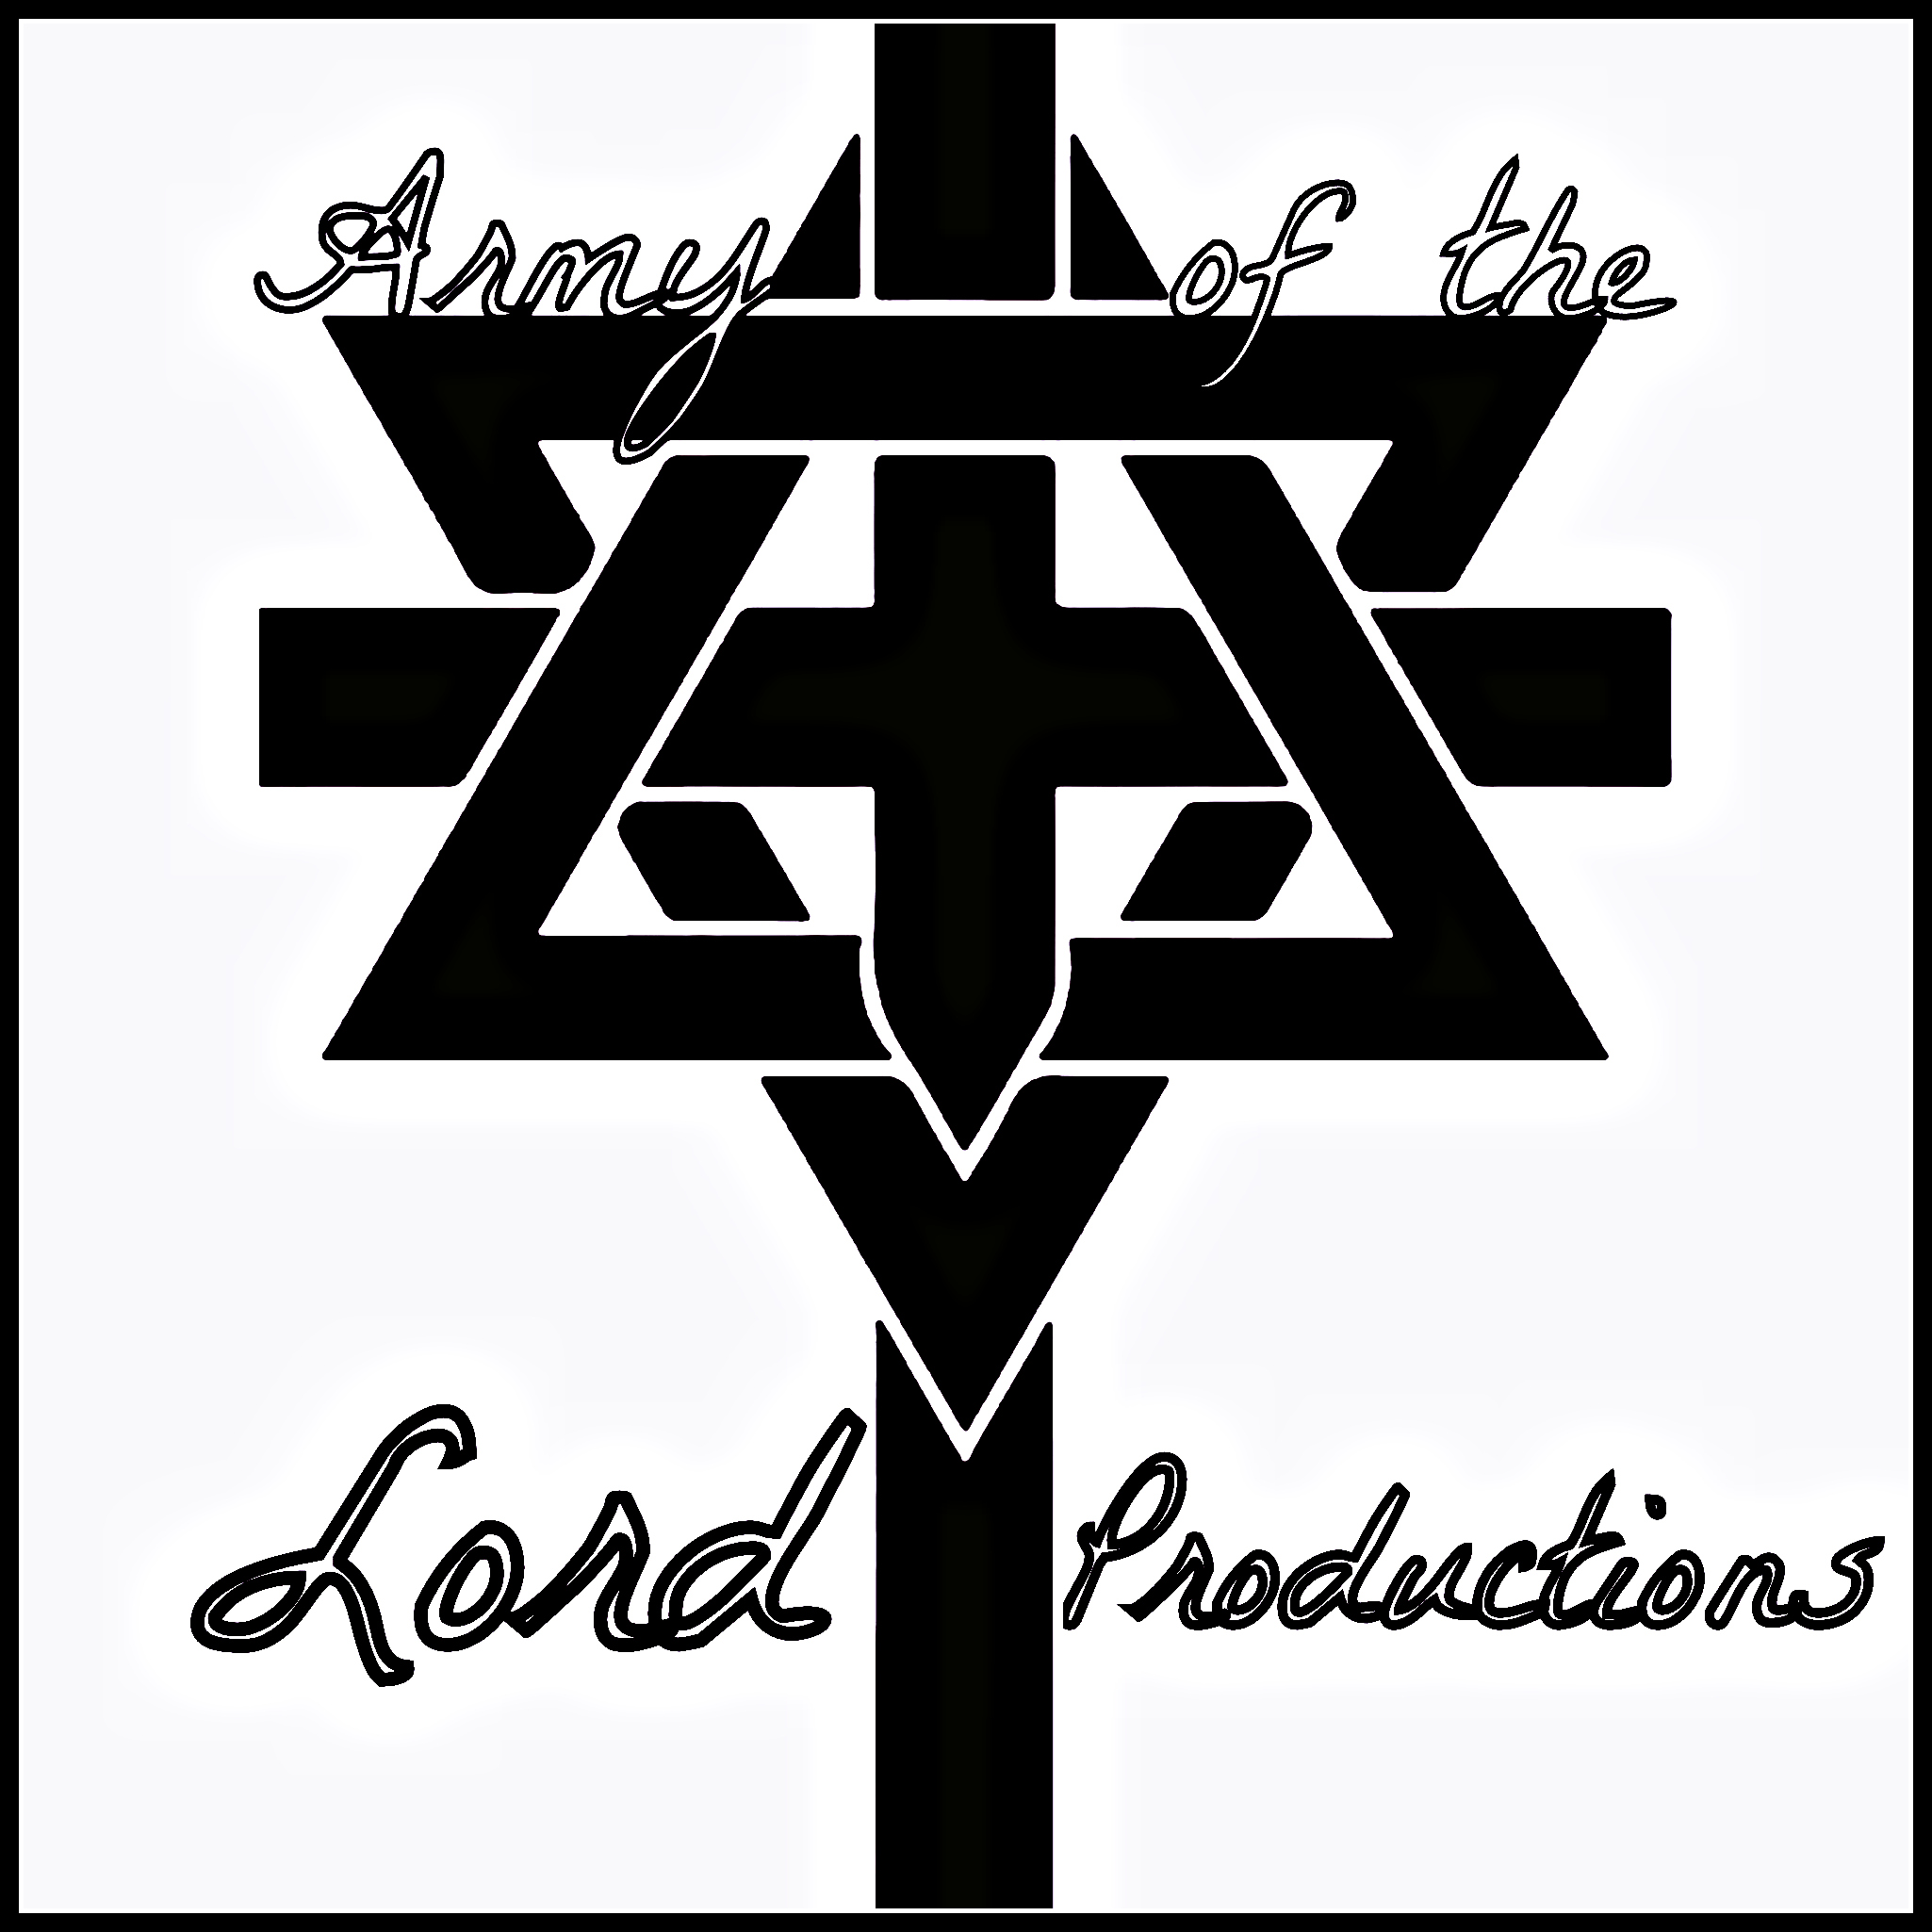 army of the lord productions